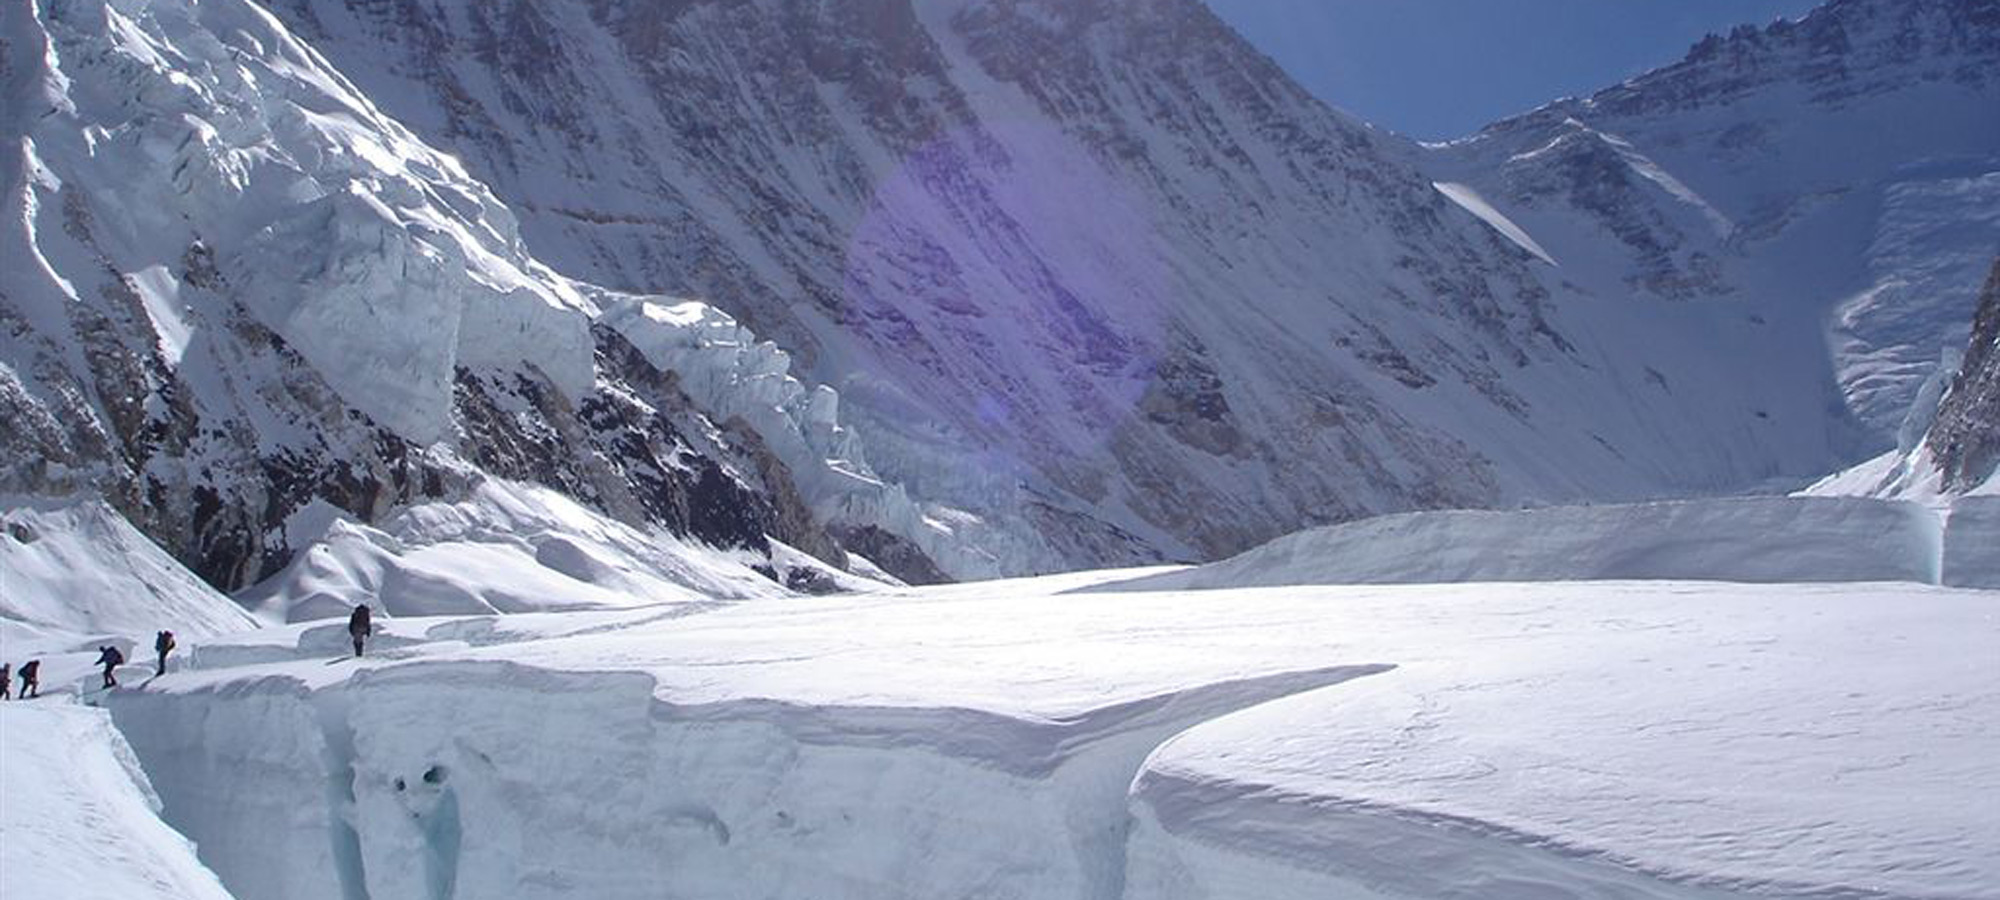 Summit of everest with big crevasse